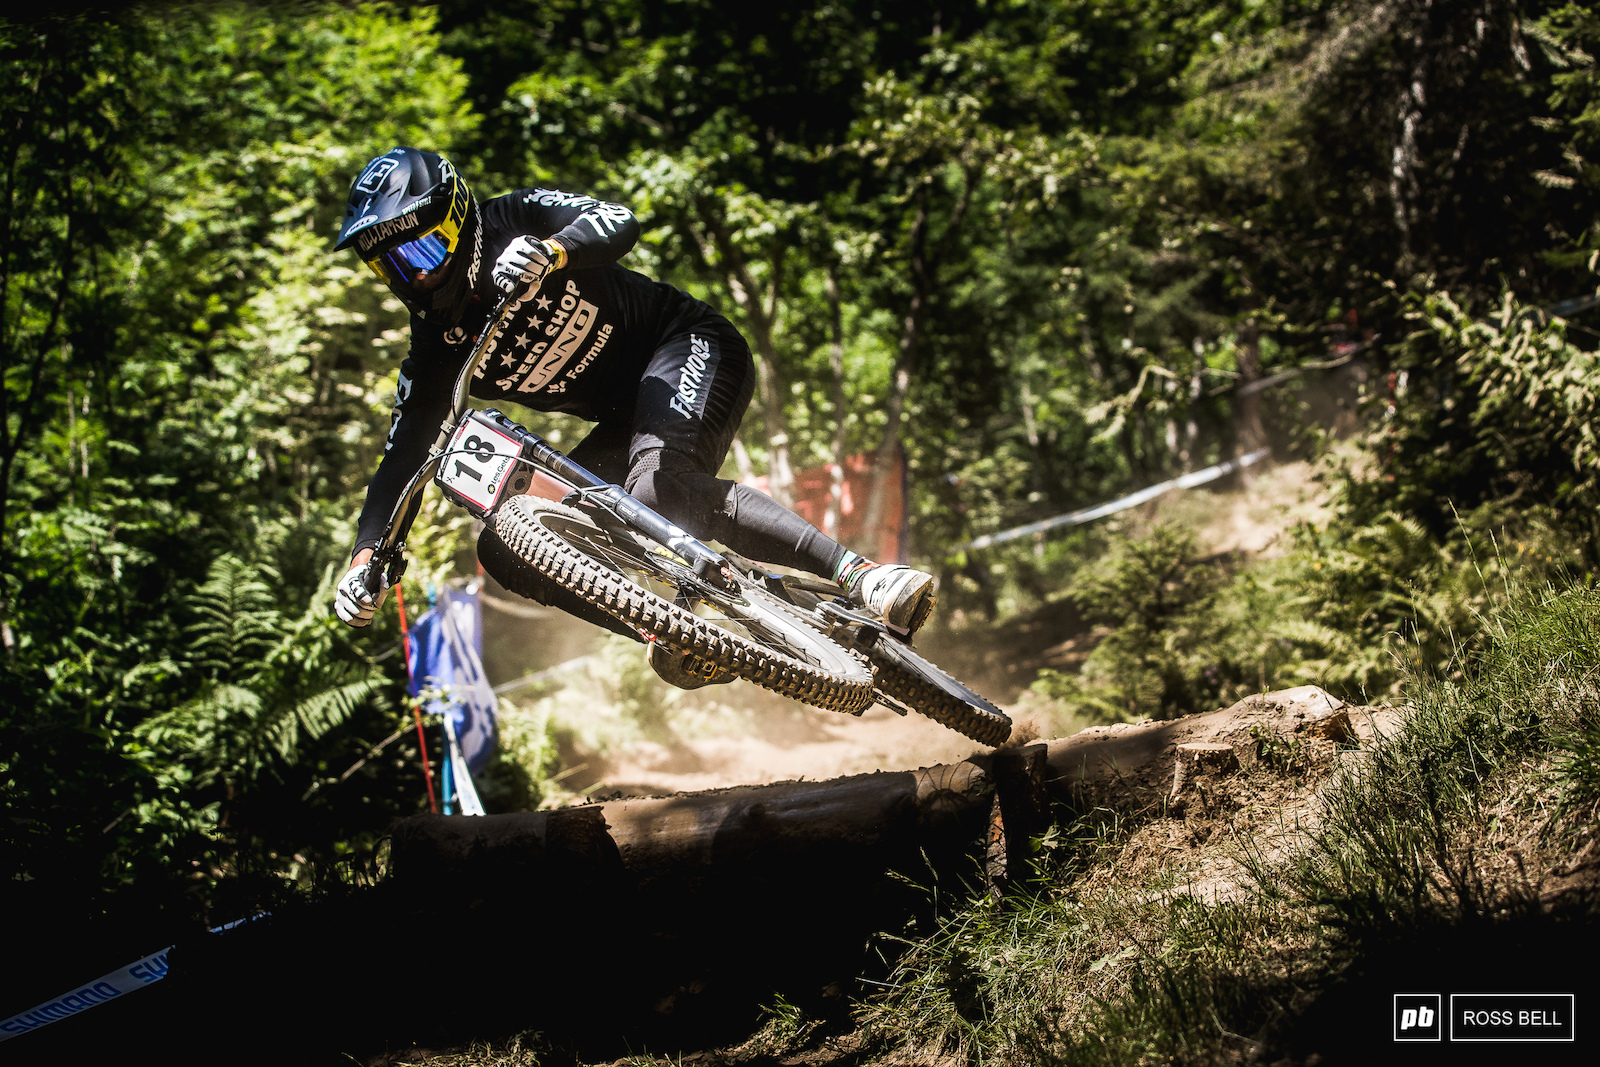 Two 10th placed splits tell an untold story for Greg Williamson today he slid out and ended back in 54th.